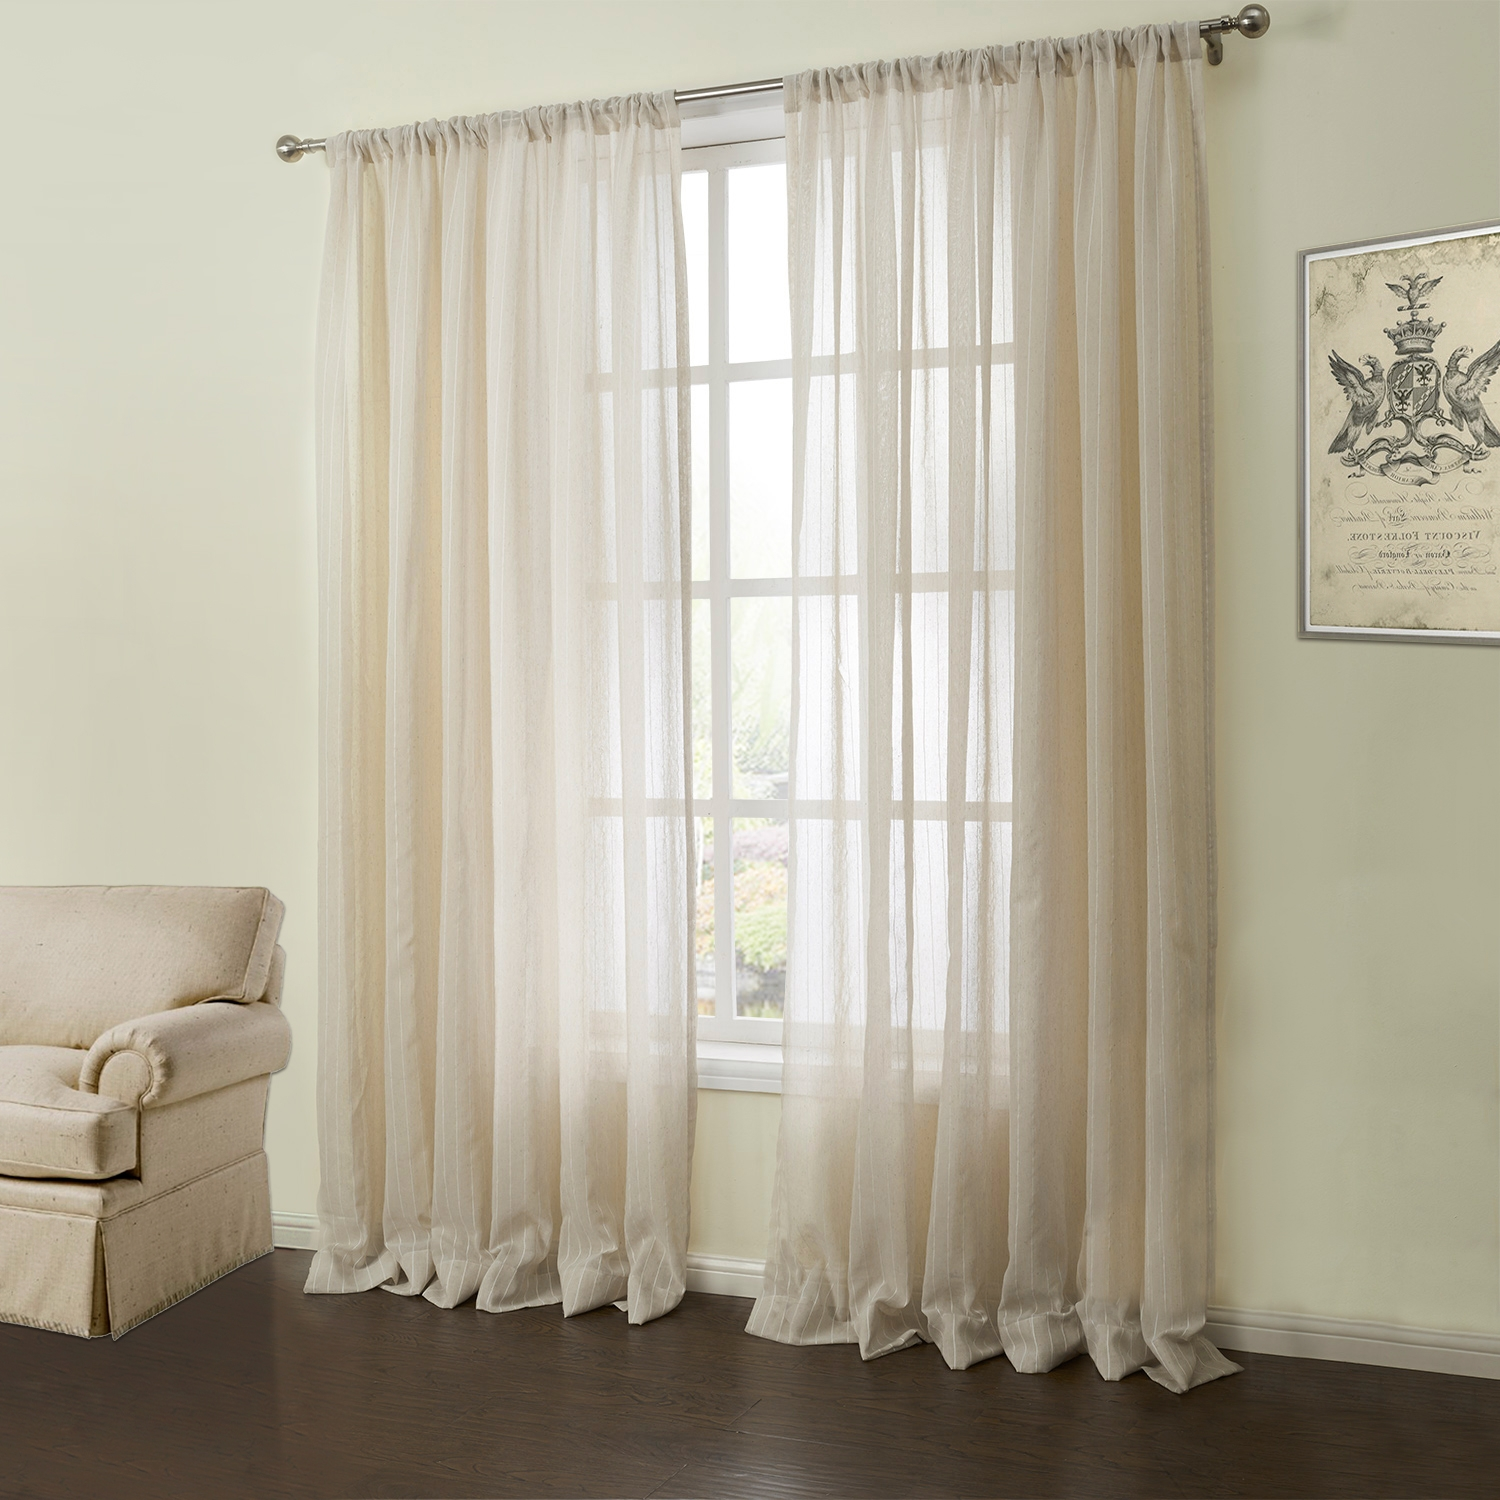 Sheer Curtains Ring Top Chiffon Cutain Voil Panel Curtain Sheer Intended For Linen Gauze Curtains (View 5 of 15)